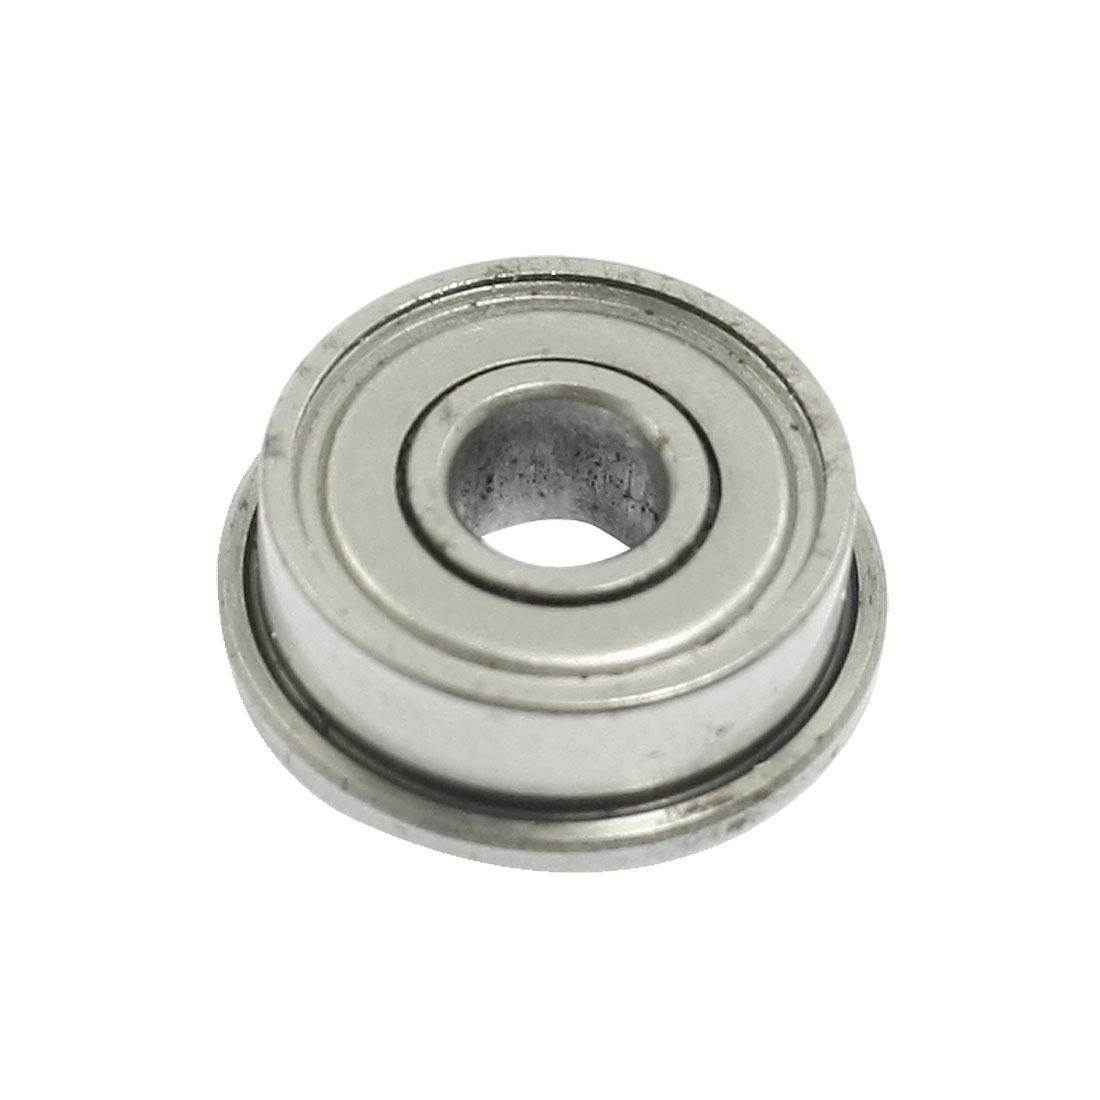 11mm x 5mm x 4mm Radial Shielded Deep Groove Flanged Ball Bearing